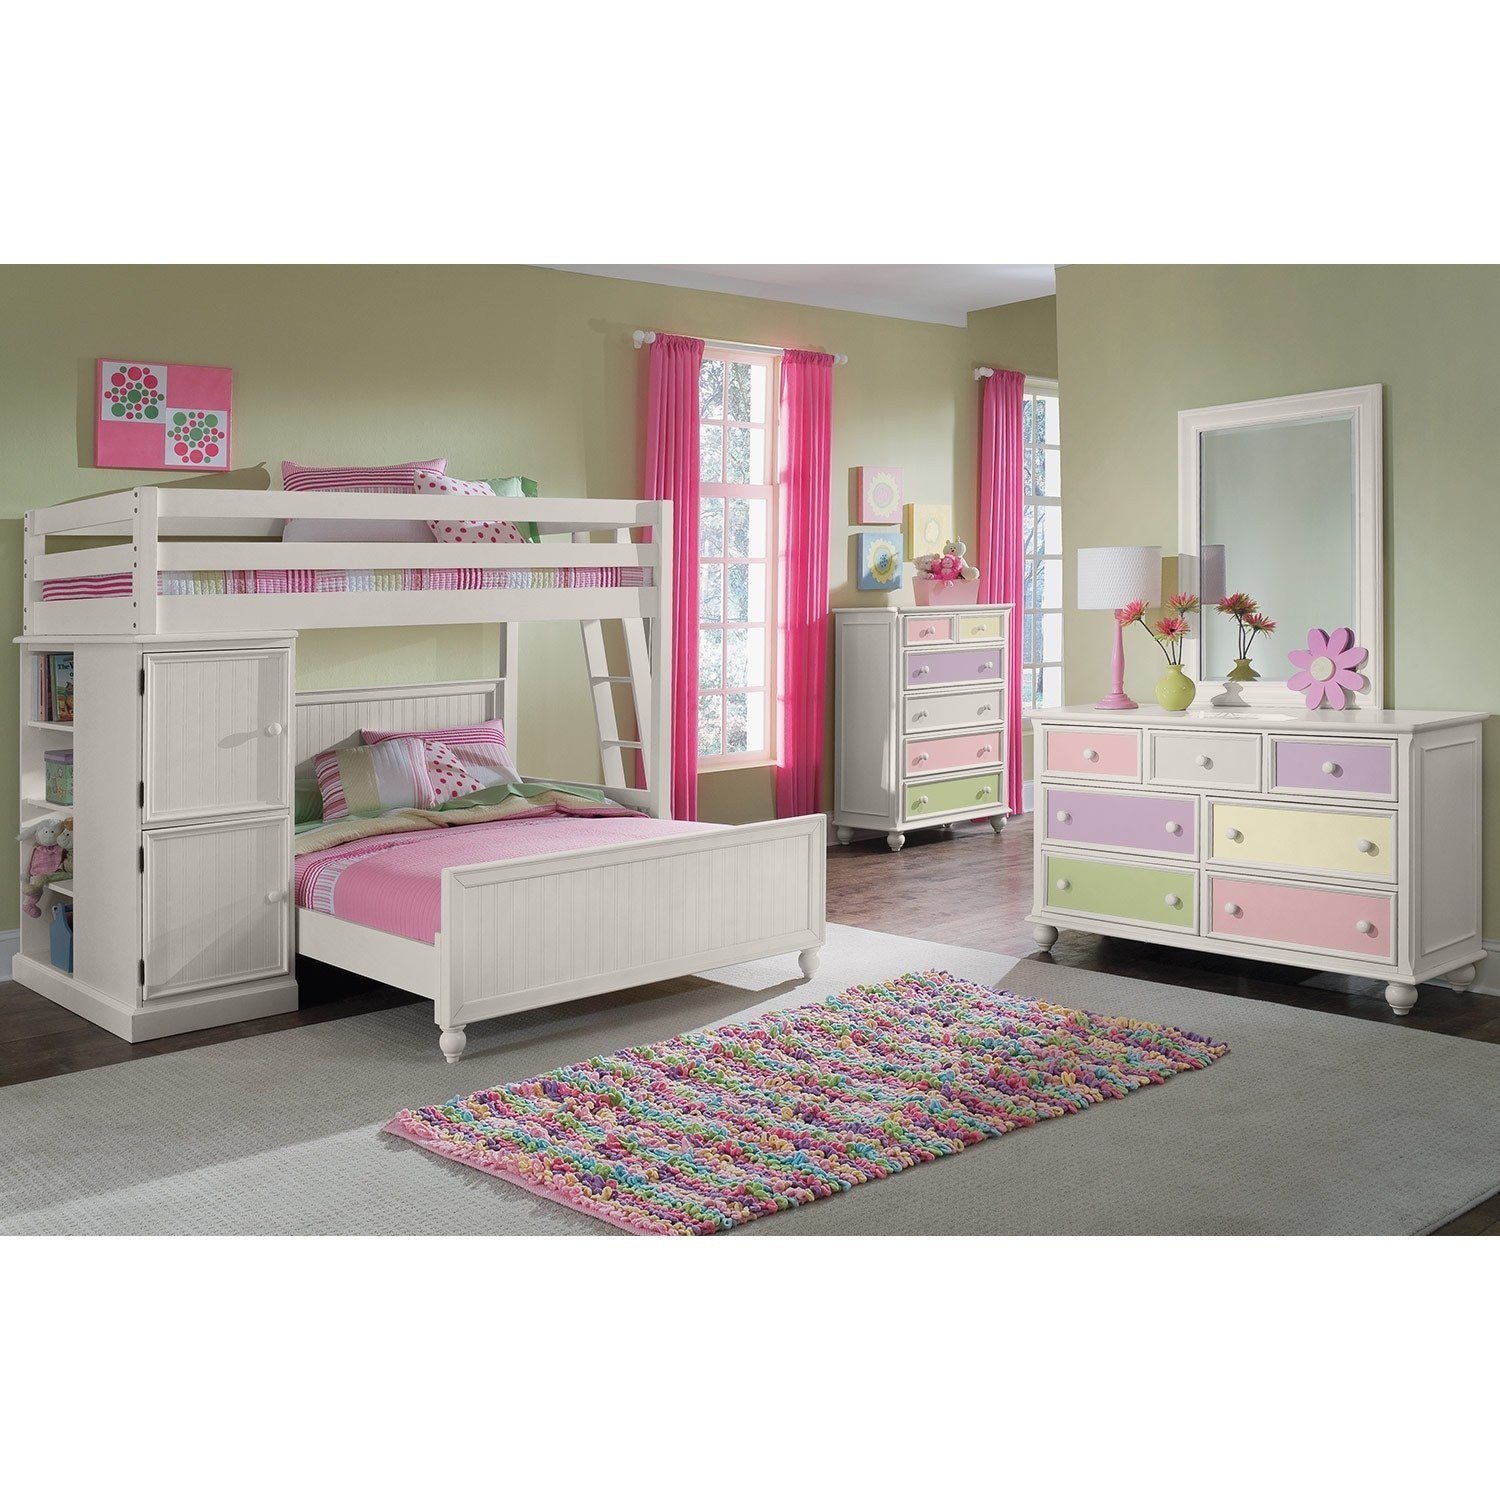 Best Colorworks Loft Bed With Full Bed White Value City With Pictures